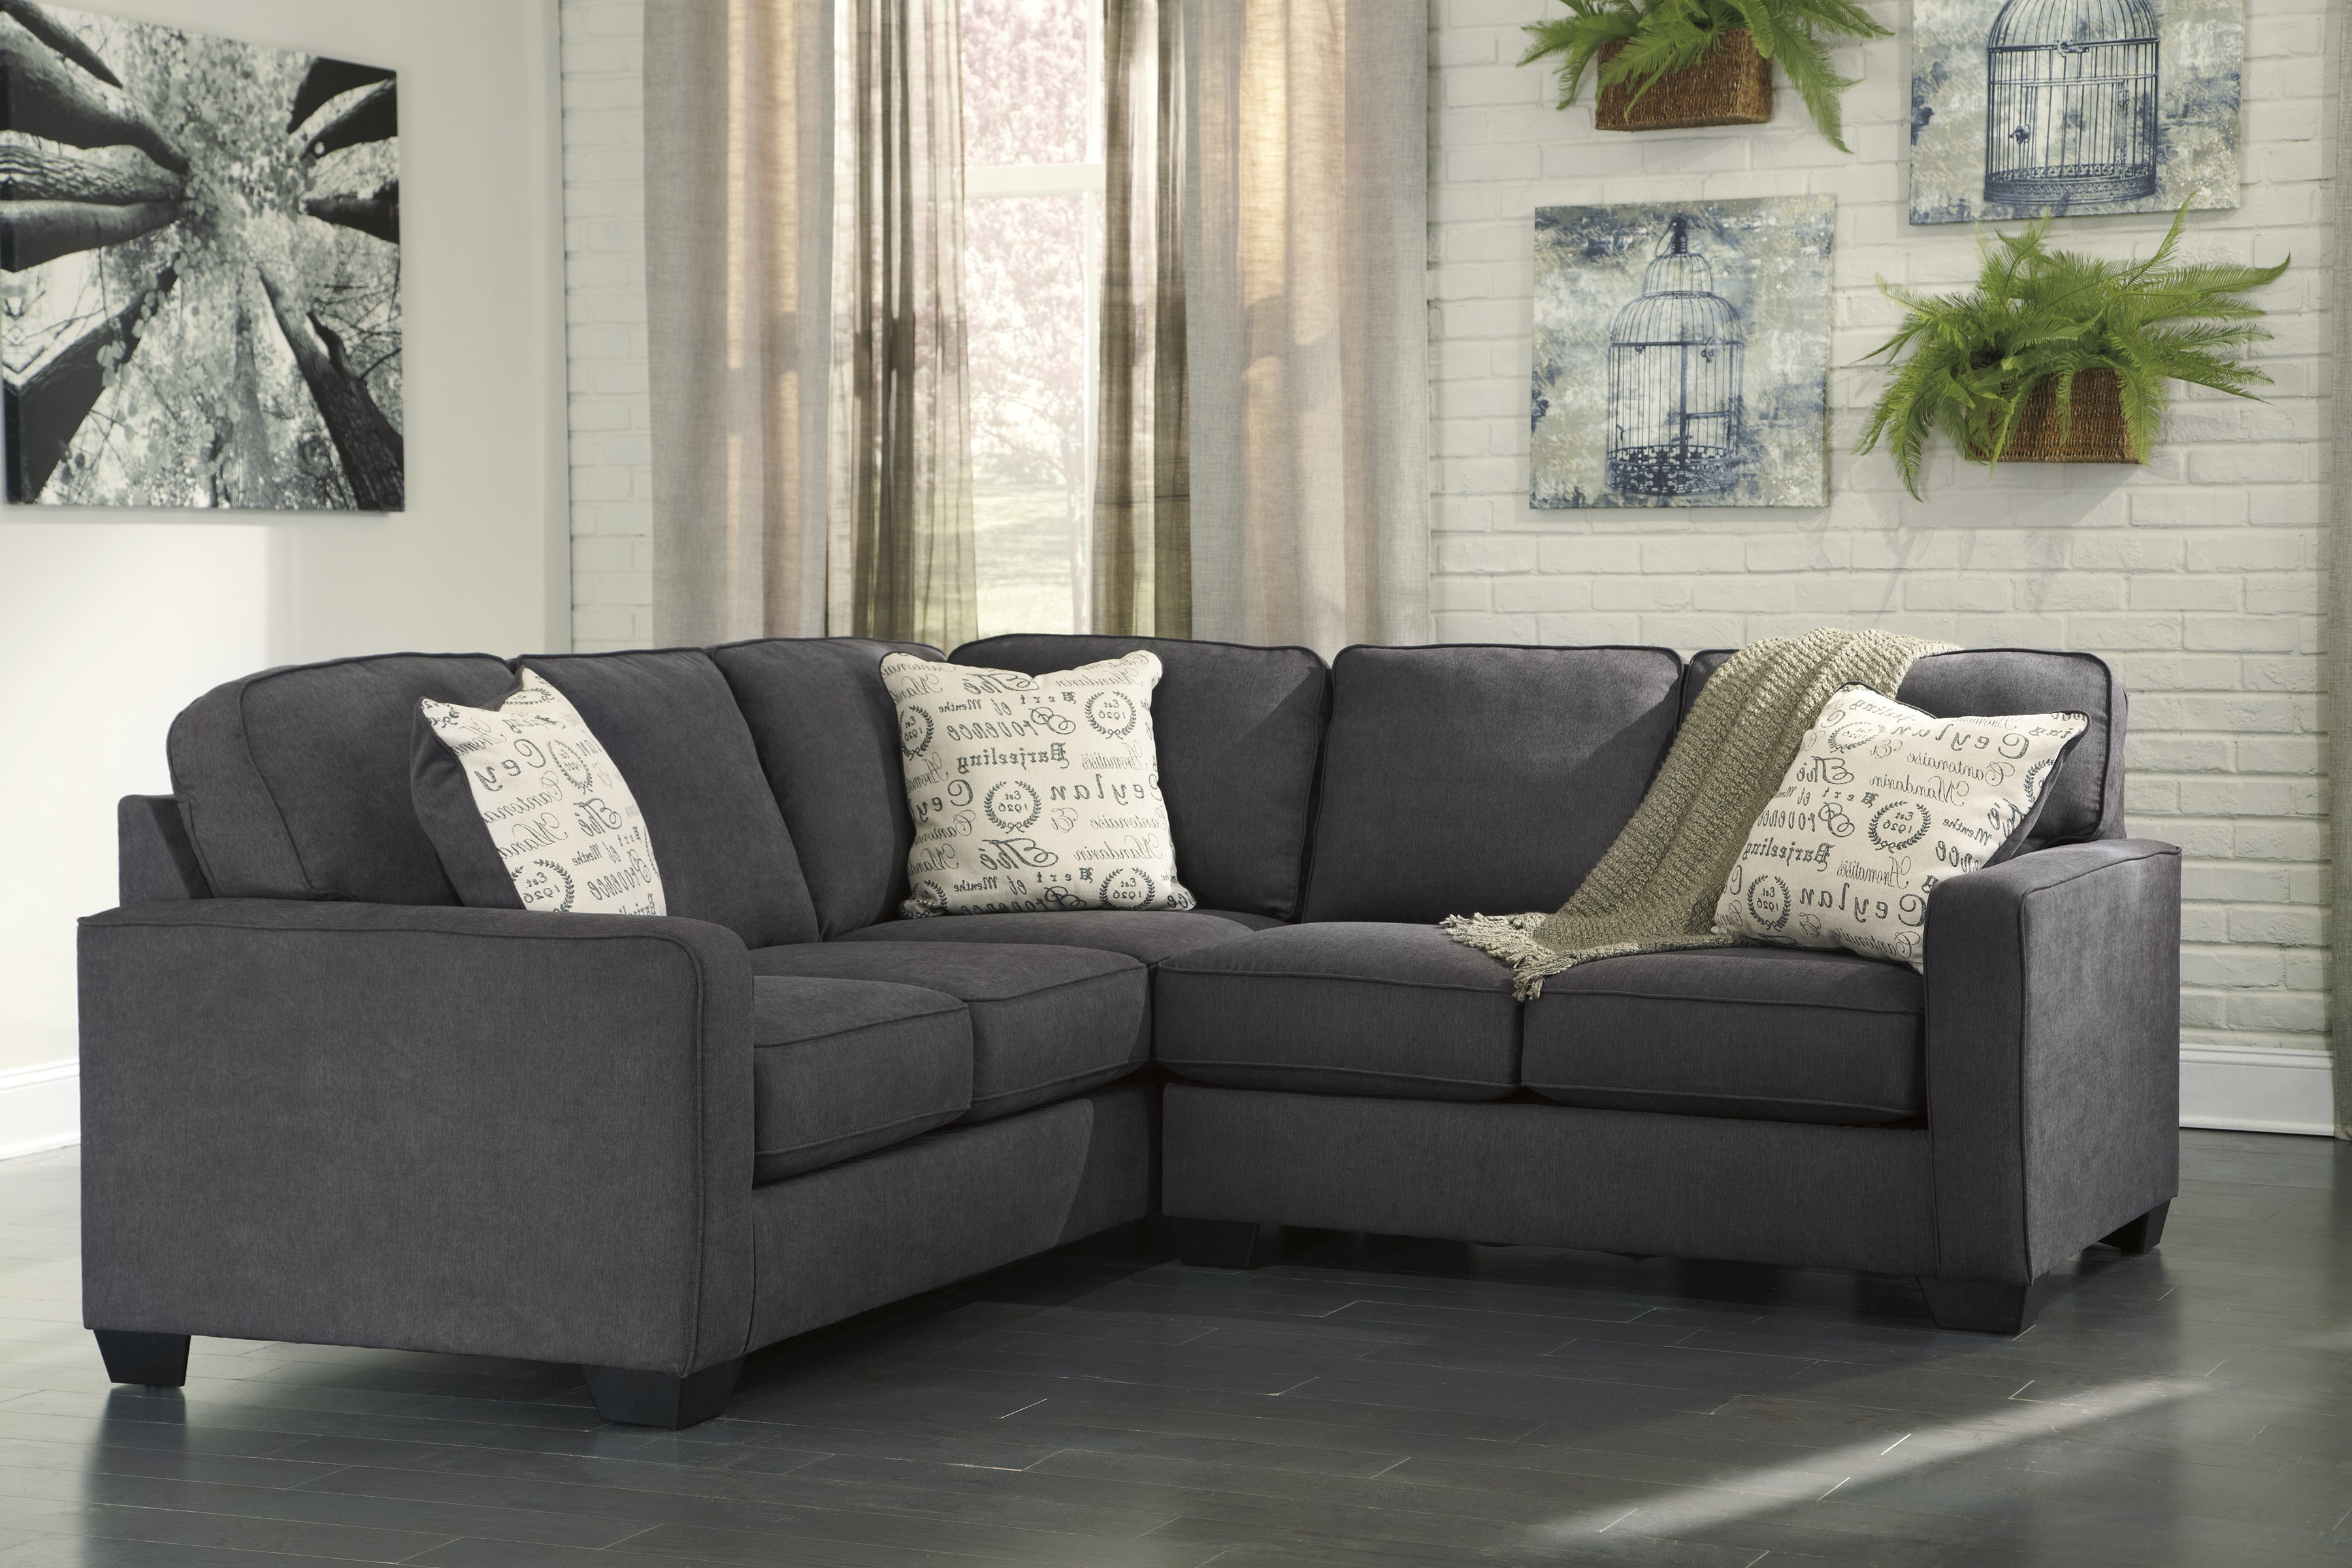 Furniture Wonderful Oversized Sectional Sofas With within size 3600 X 2400